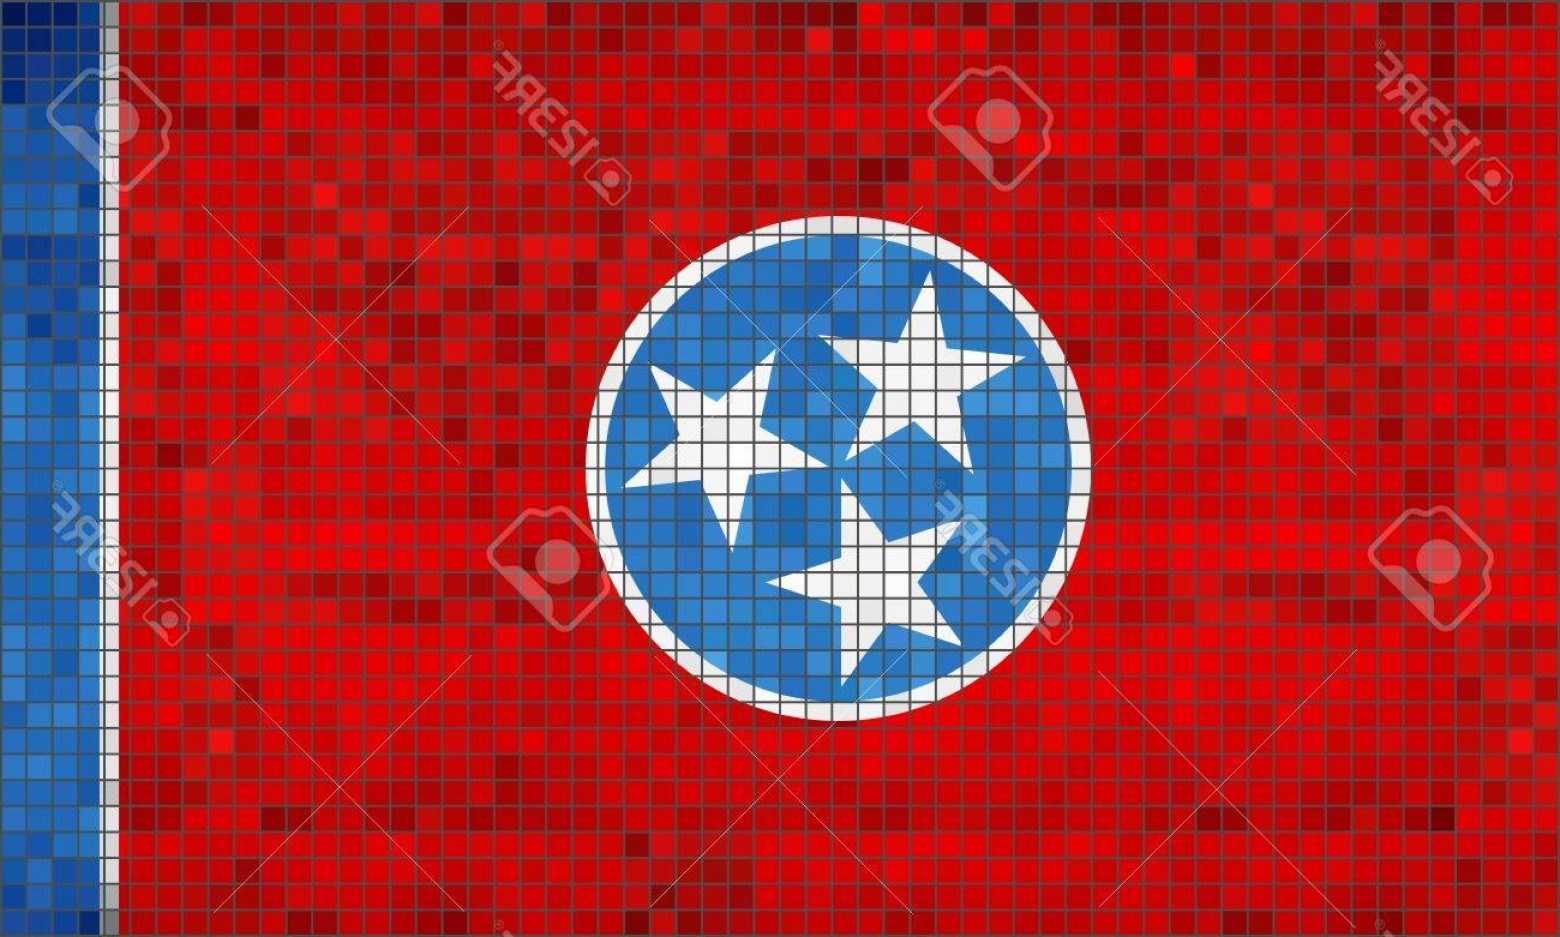 Tennessee Flag Vector: Photostock Vector Abstract Mosaic Flag Of Tennessee Illustration The Flag Of The State Of Tennessee Tennessee Grunge M